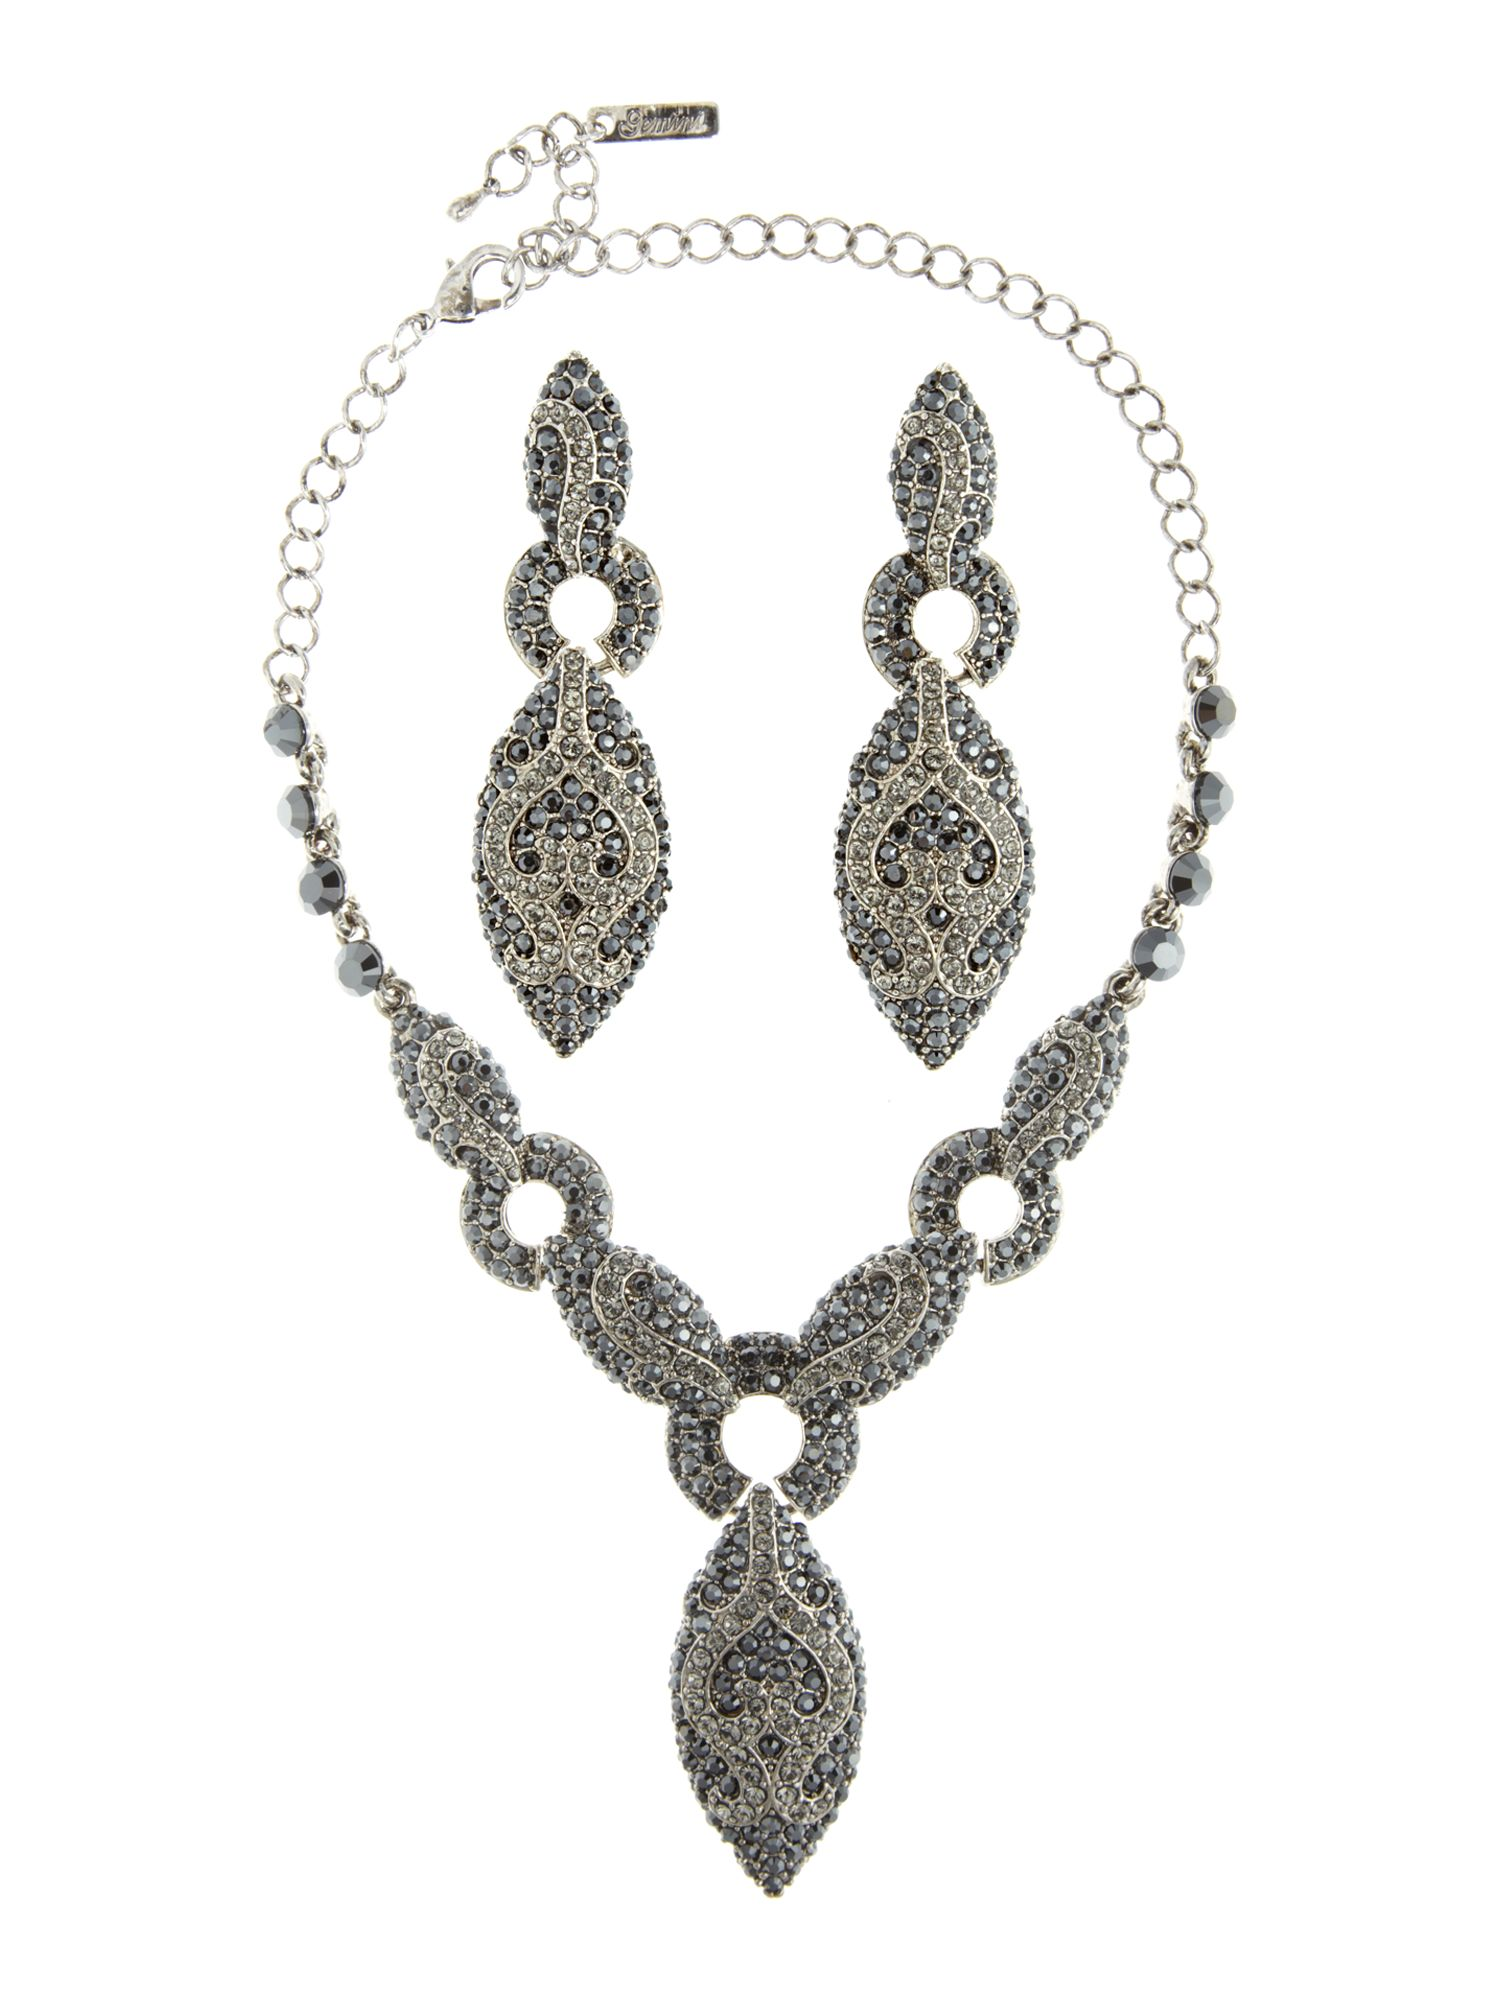 Gemini Hautecouture necklace set with swarovski crystals